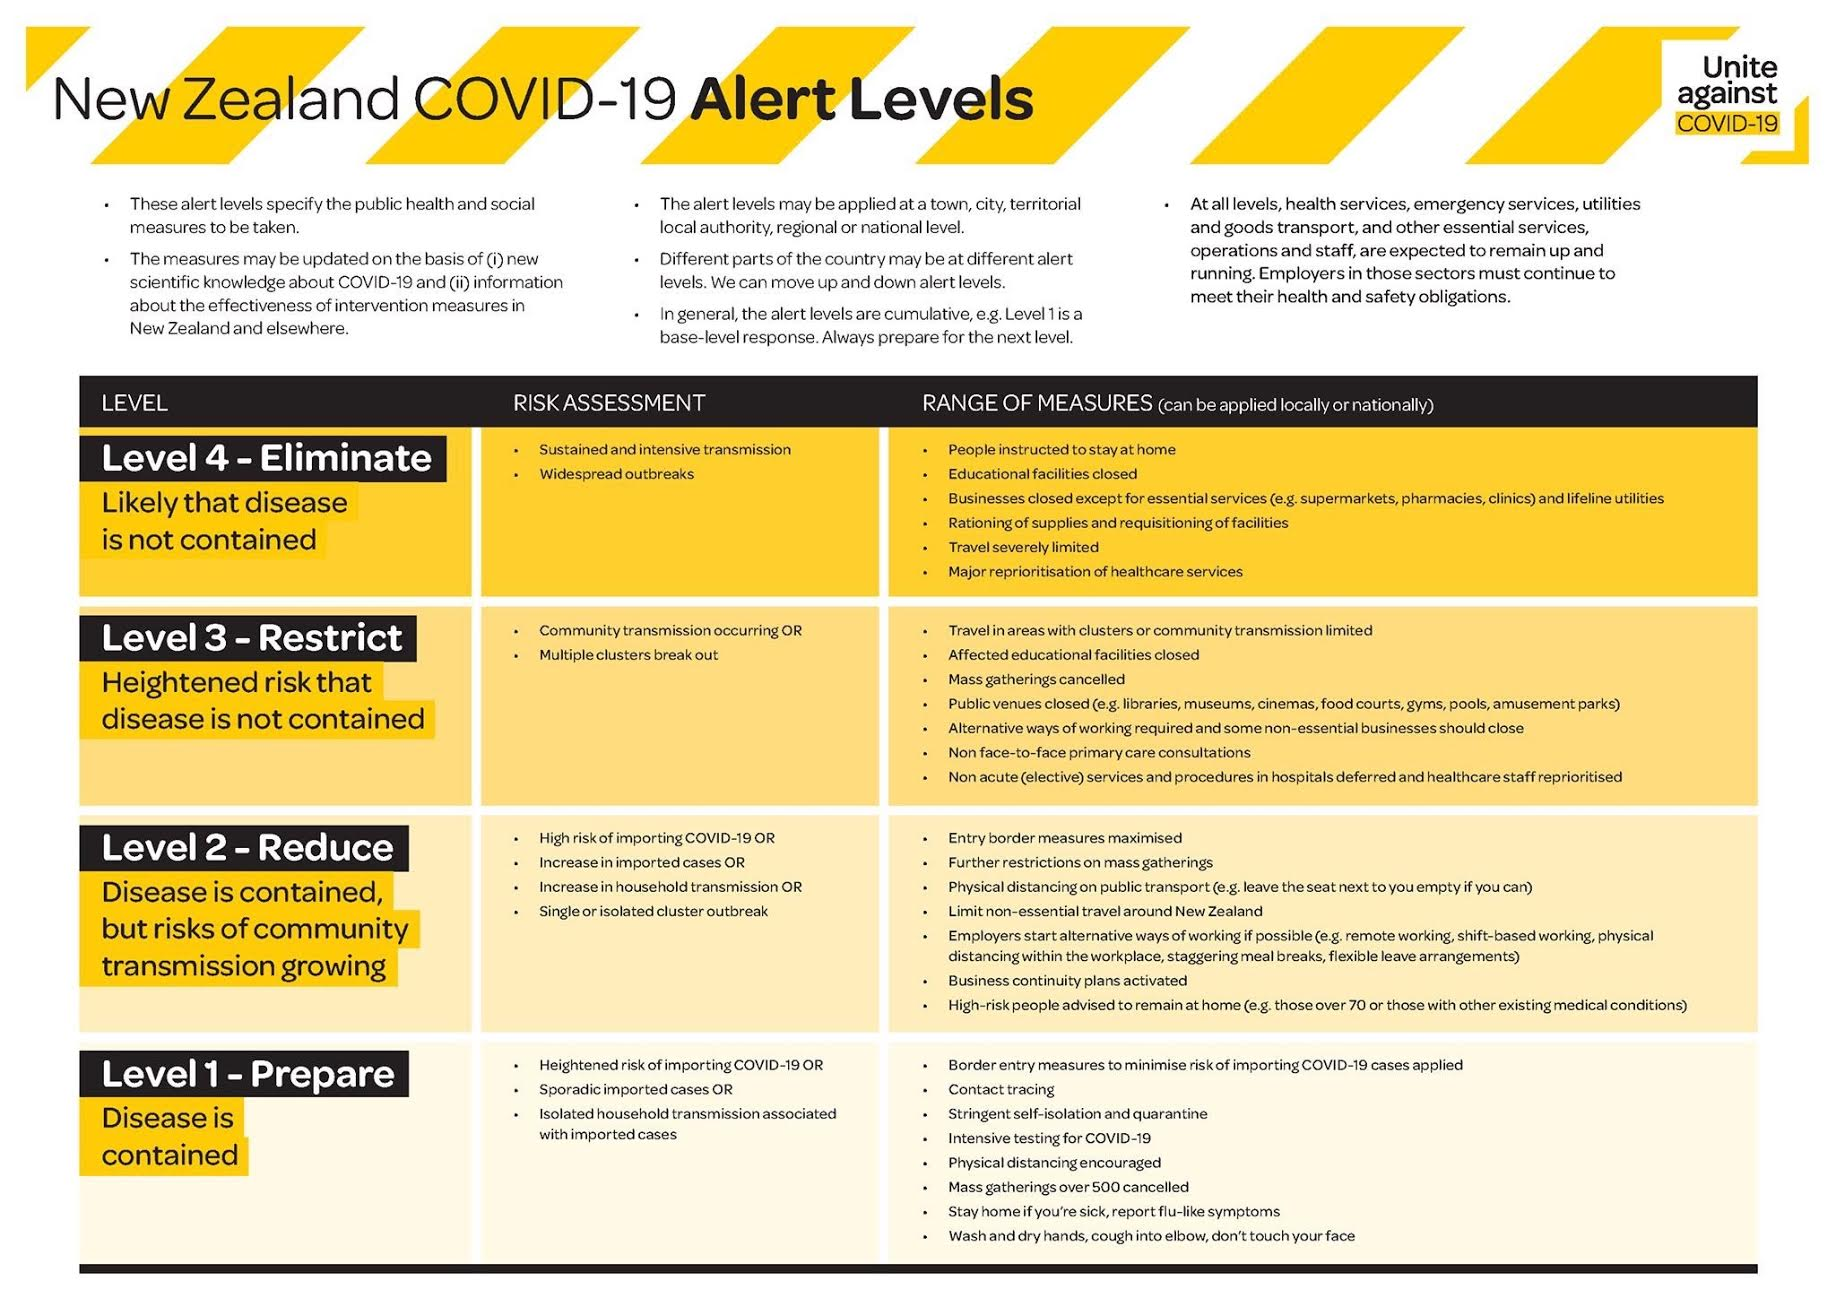 NZ prepares for unprecedented virus lockdown - 36 new Covid-19 cases